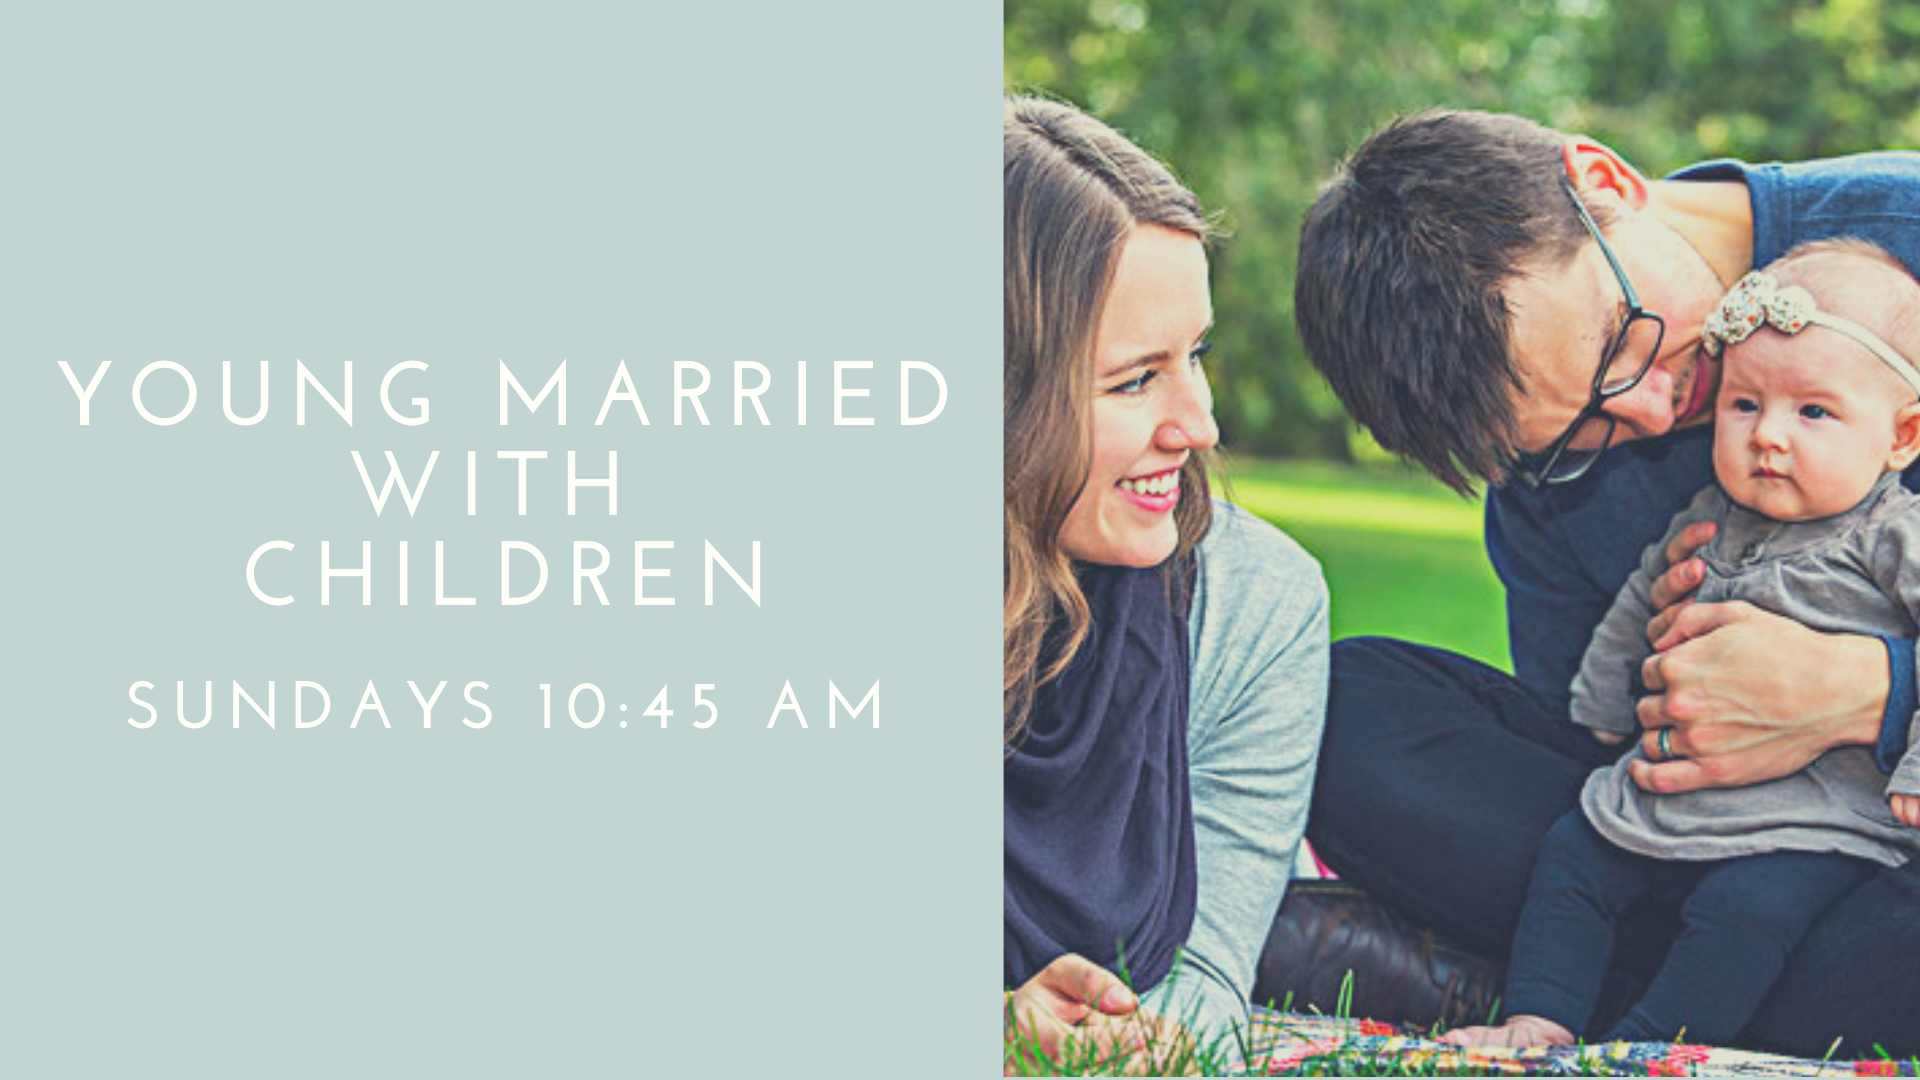 If you are a young parent or expectant parent, age 25-35, we invite you to fellowship and grow in God's Word with us Sunday morning at 10:45 am. Led by one of our elders Steven Grimes, we are currently going through the book of Colossians.